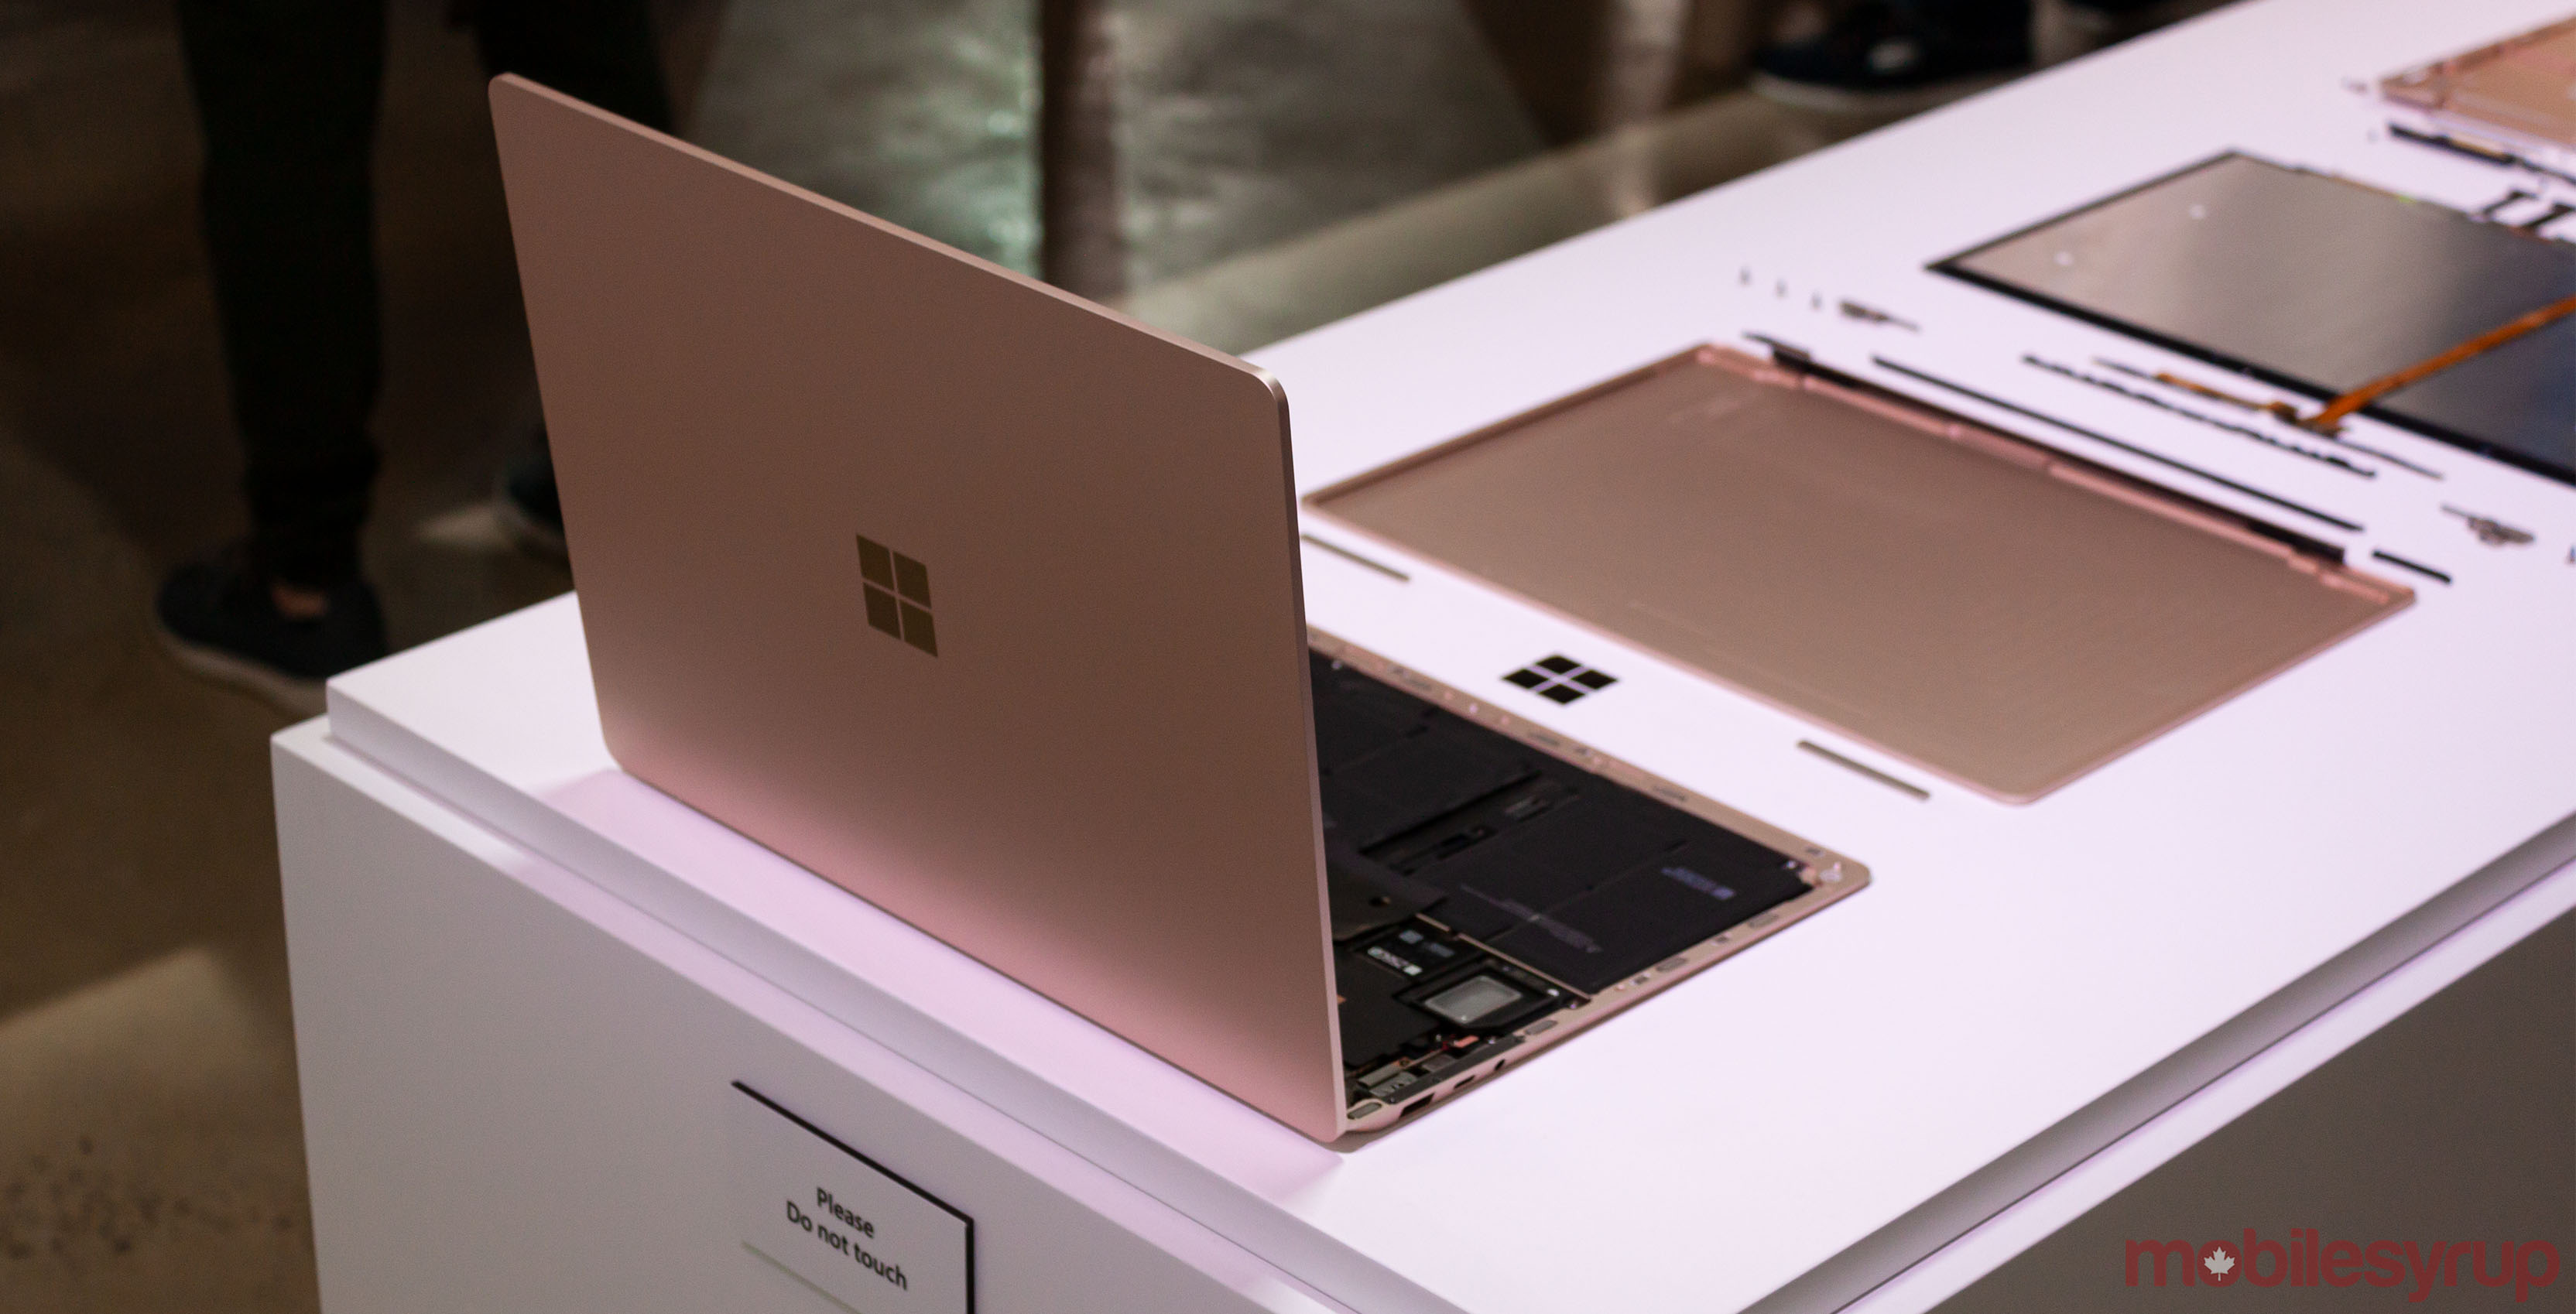 Microsoft lets you upgrade its new Surfaces, but it doesn't make it easy